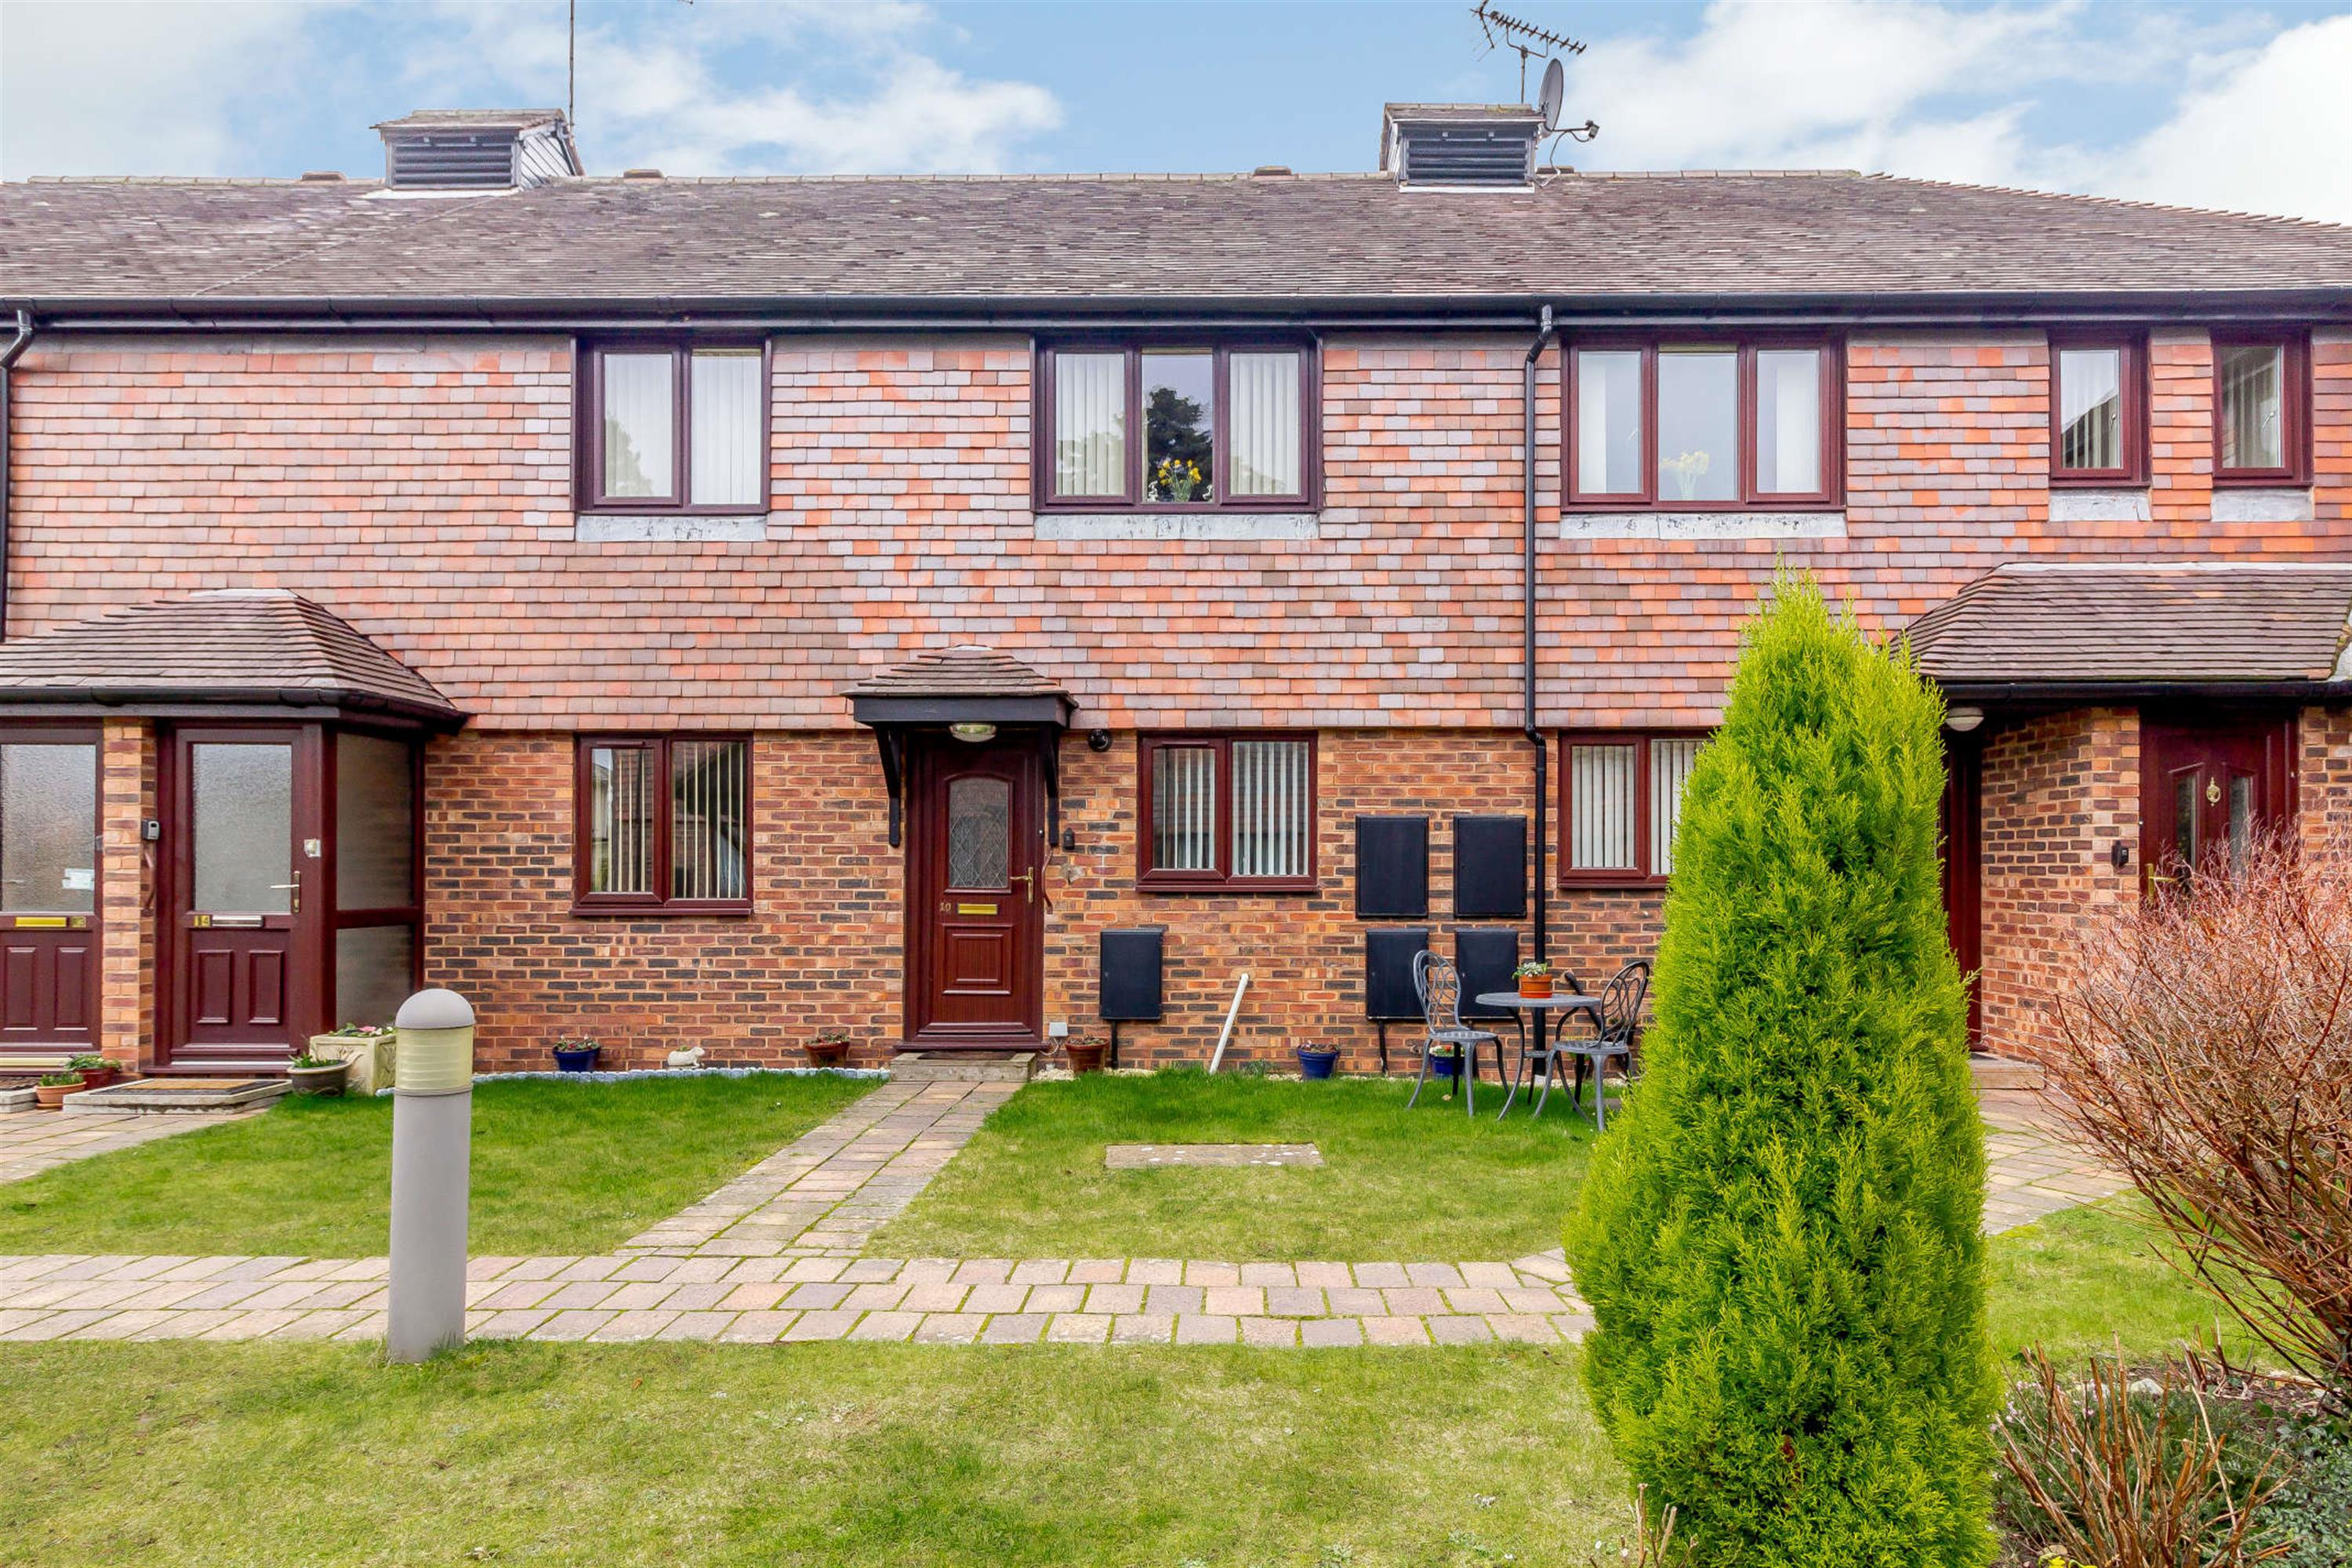 Beechwood Court, Hereford, HR1 1DX